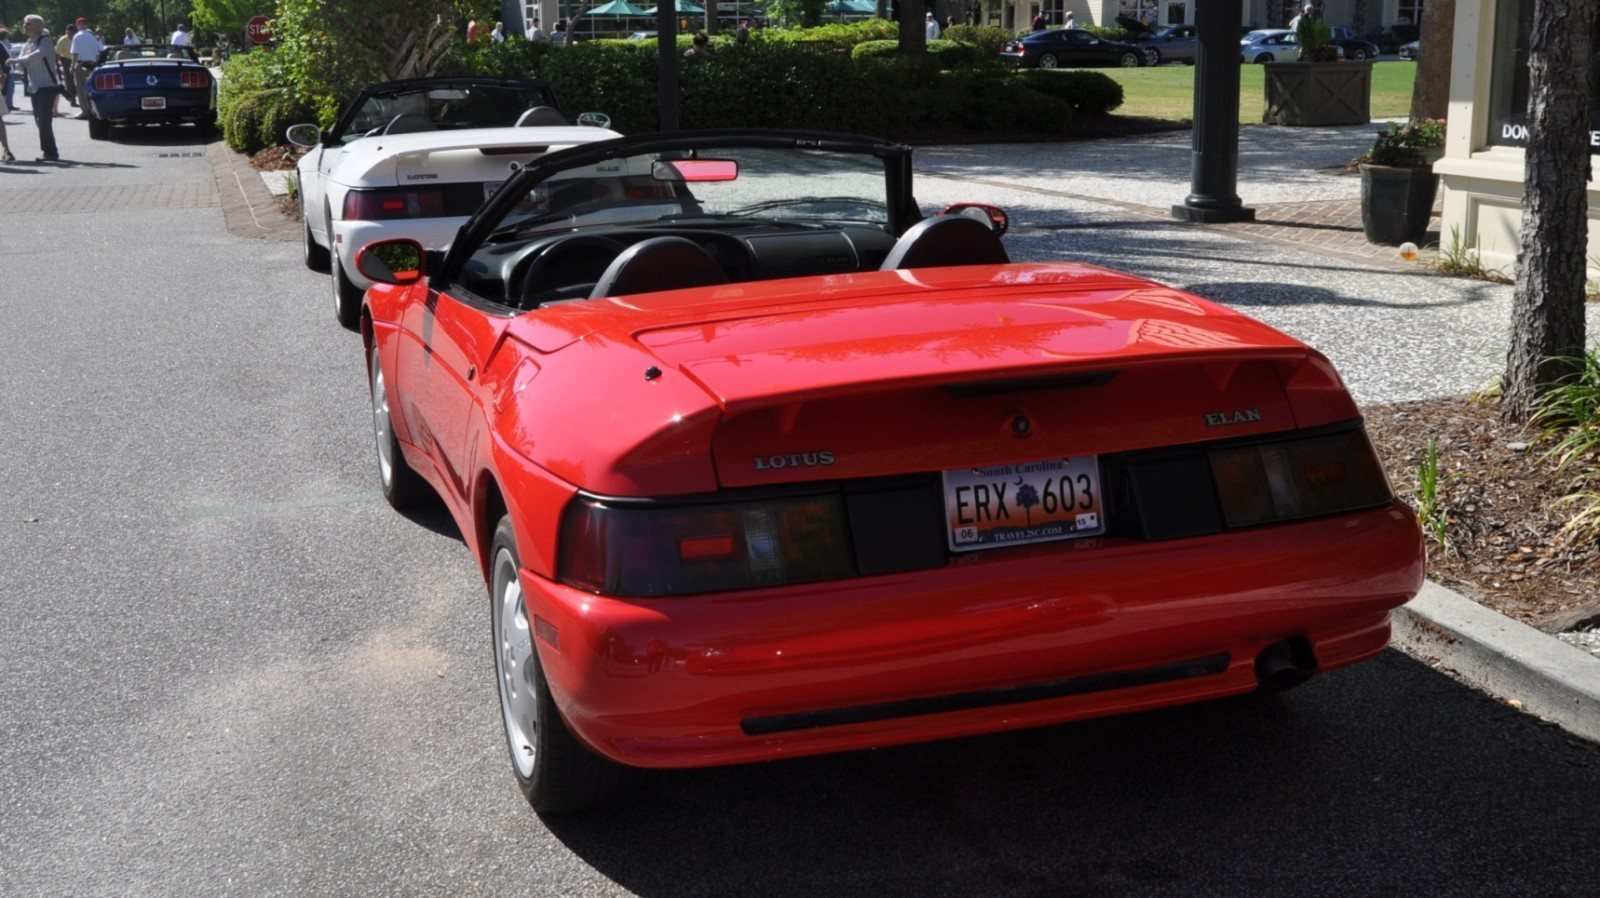 Rare Ragtops - A Pair of Lotus Elans Graced Kiawah Island, SC Cars and Coffee Today 30